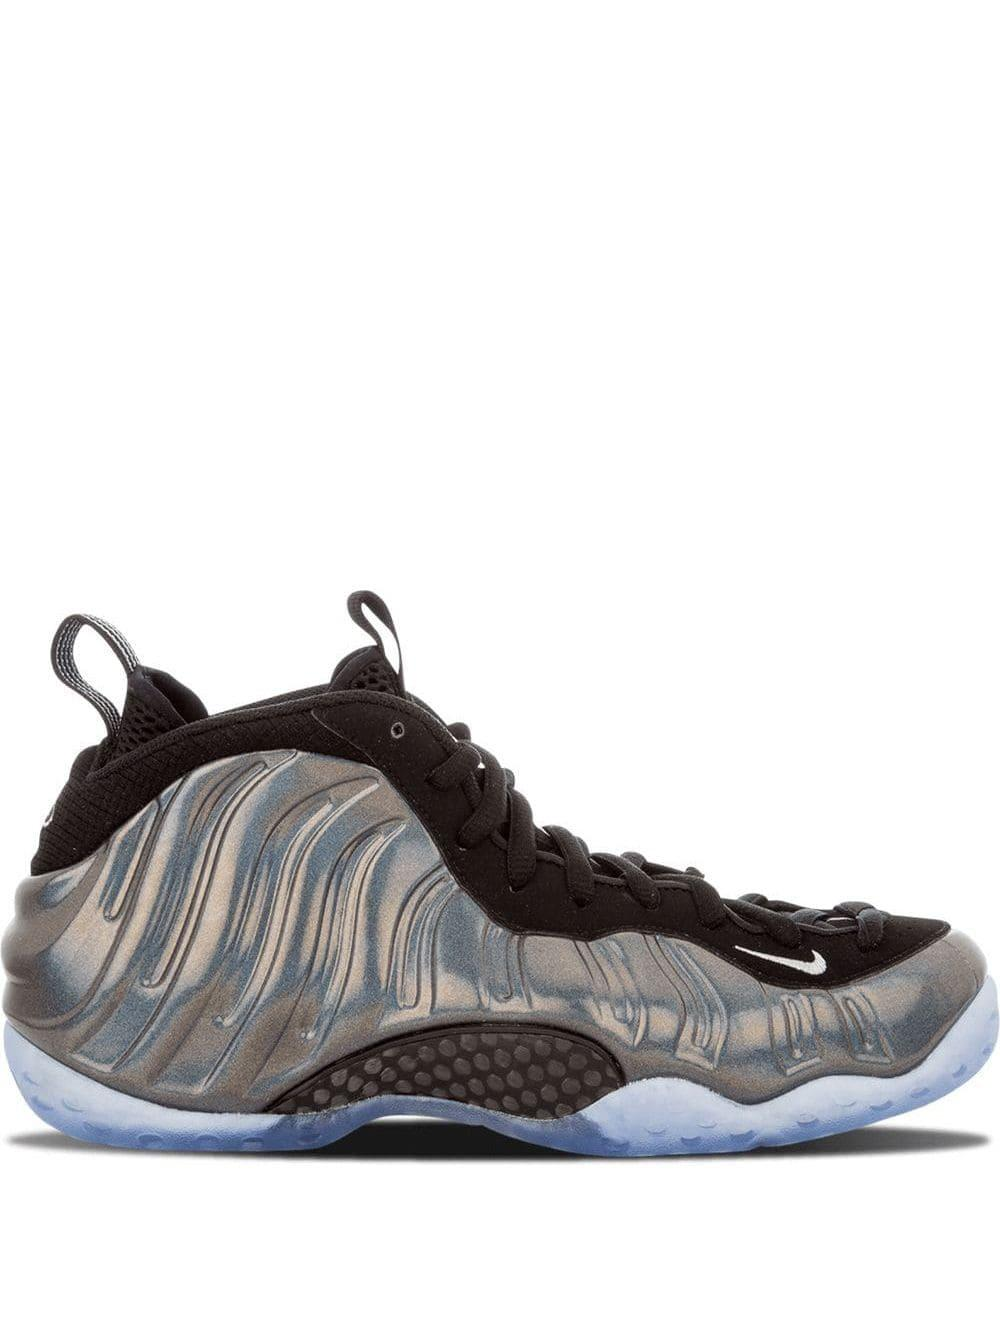 Nike Air Foamposite One Cough Drop Size 10 314996 006 ...